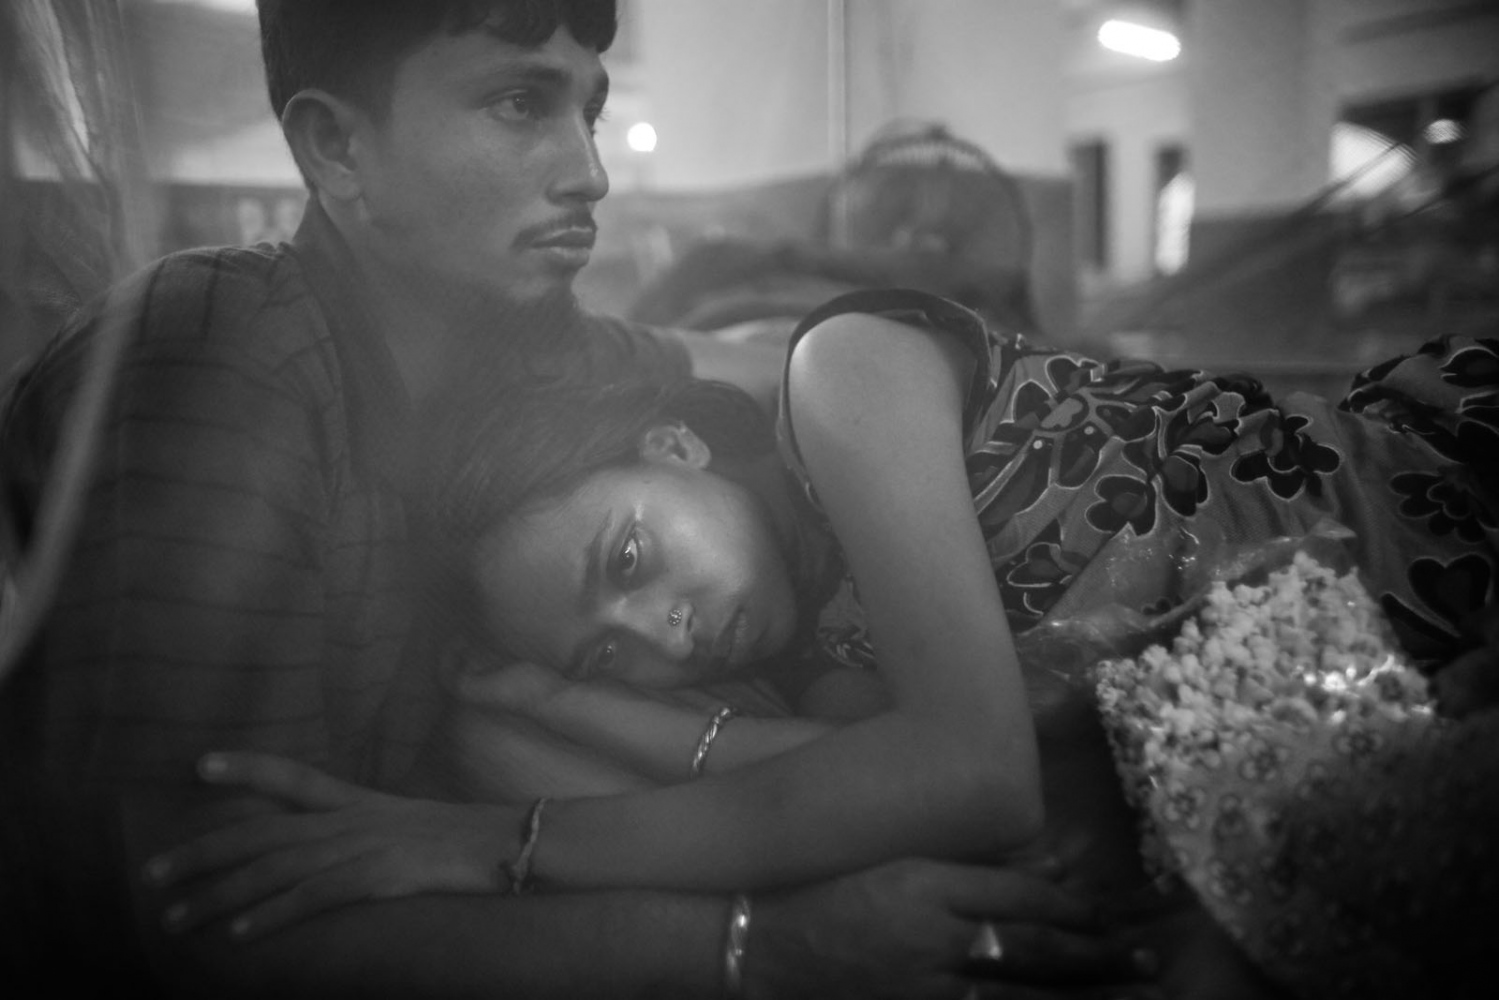 Fear is all Rebecca has now. She lives her trauma over and over. Rebecca was among those trapped under the rubble of Rana Plaza. Her husband Mustafiz tries to comfort her at the National Traumalogy and Orthopaedic Rehabilitation Centre.